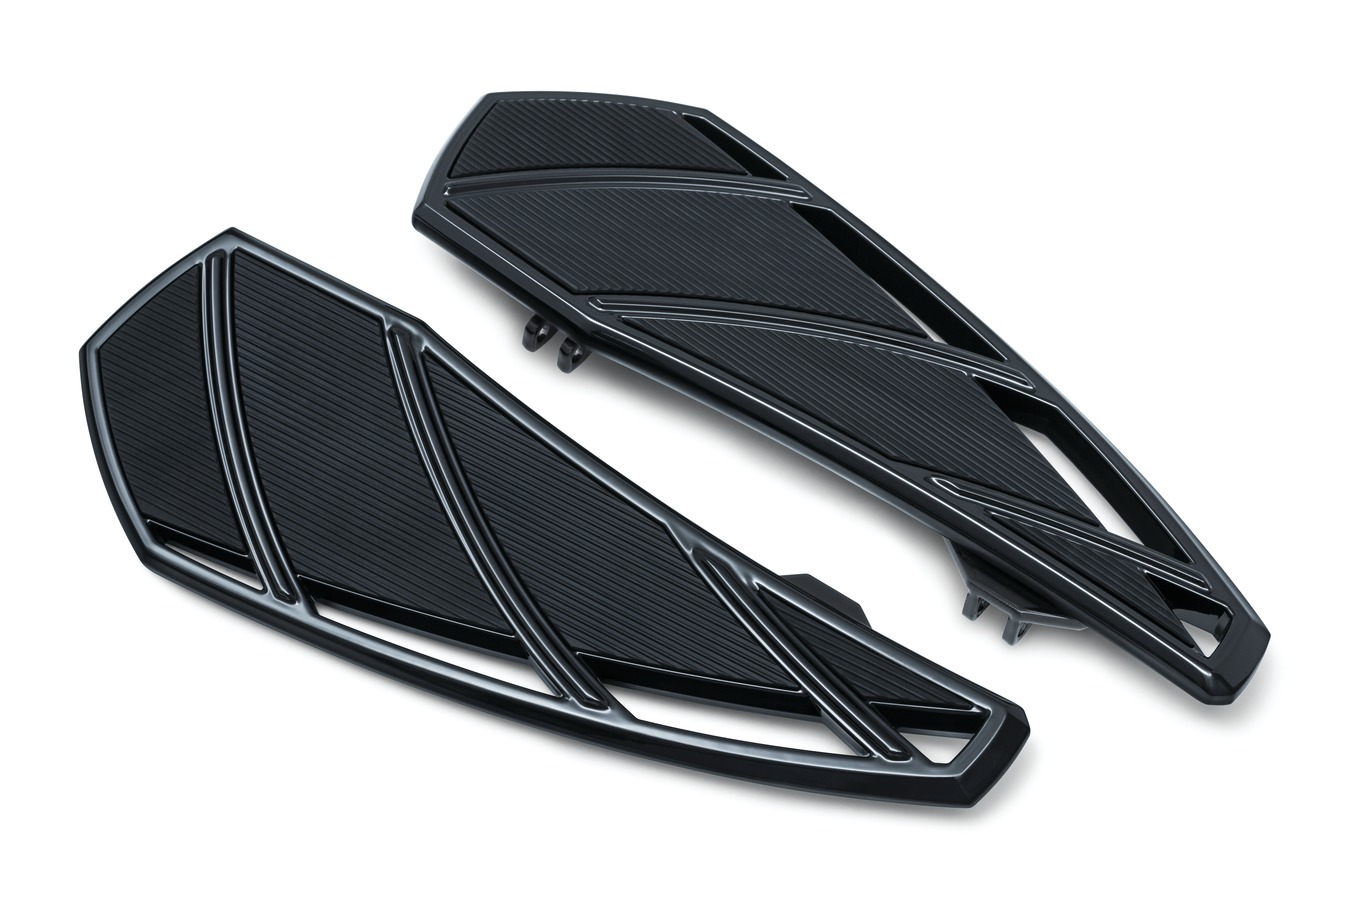 190917 PN#5793 - Phantom Driver Floorboards, Gloss Black